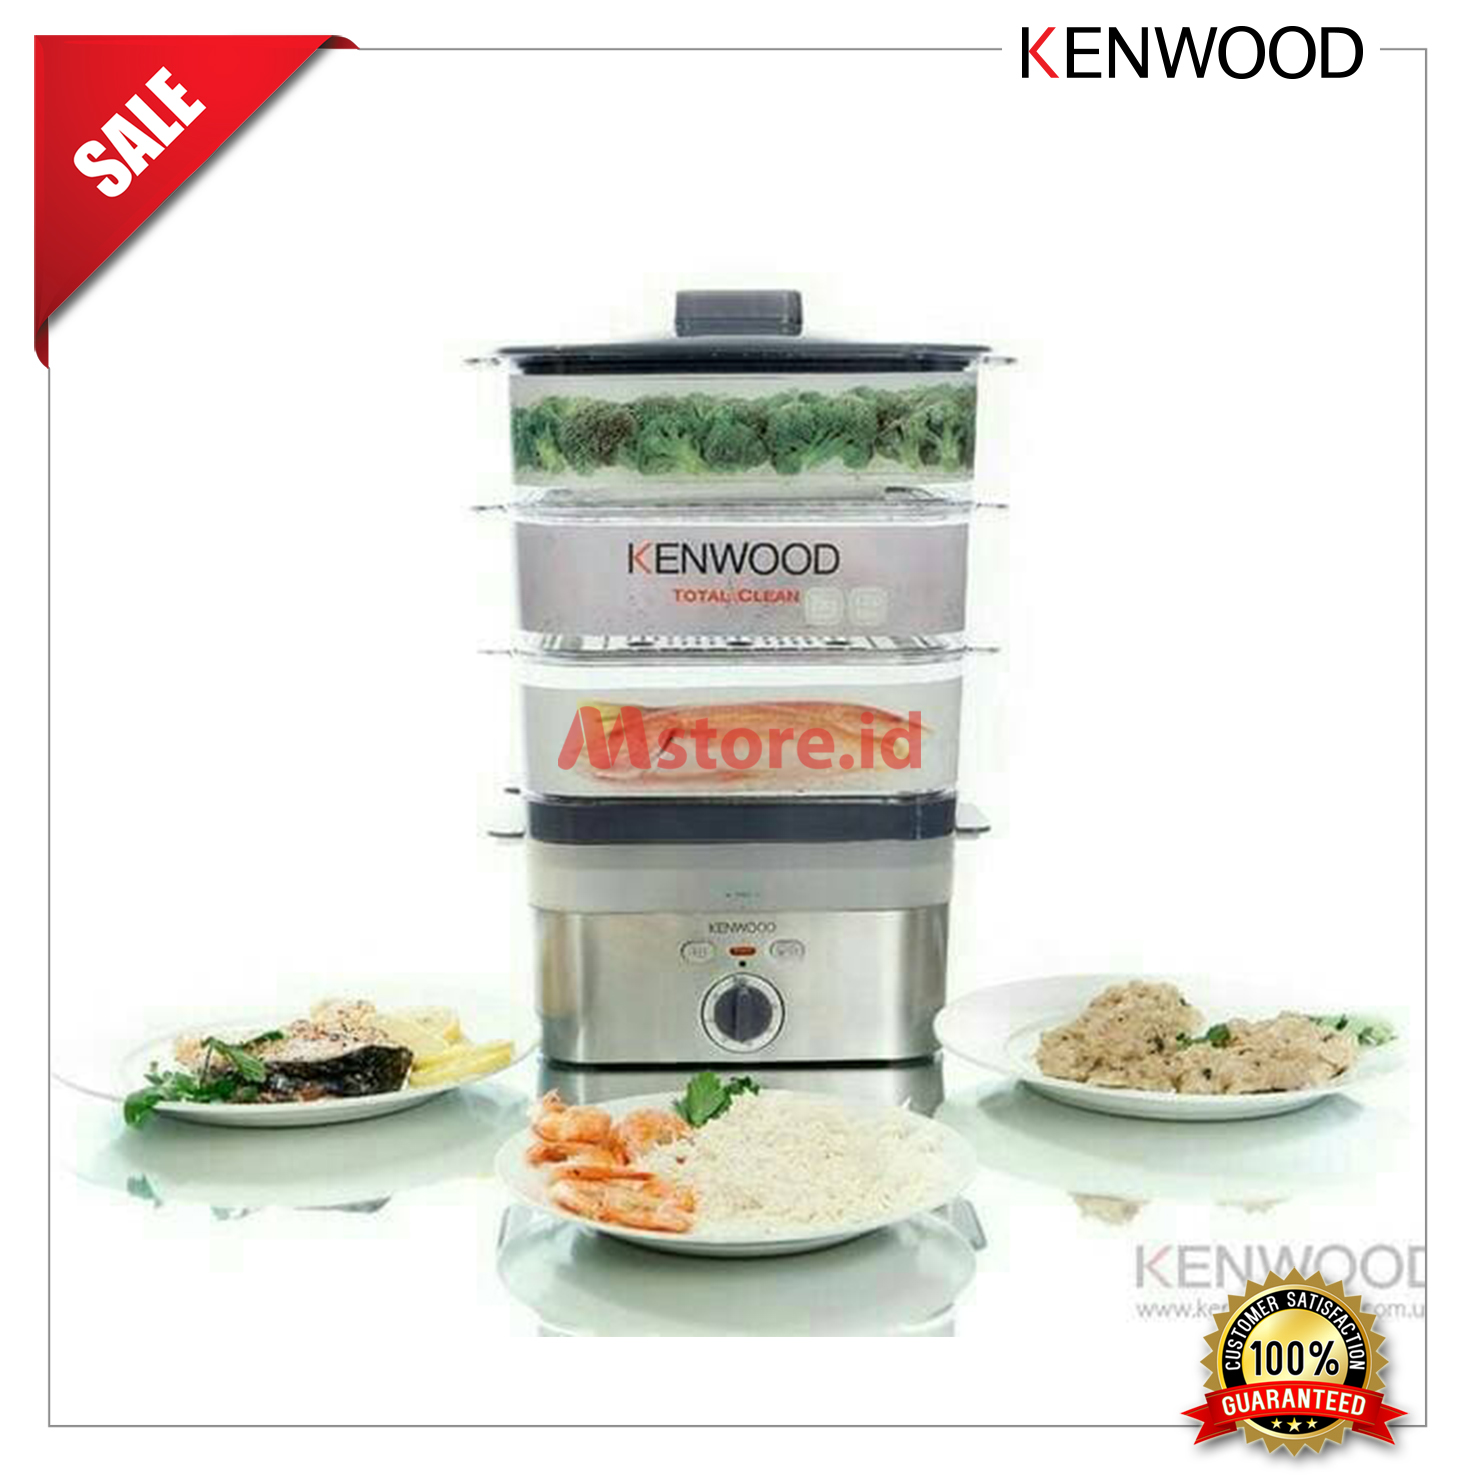 KENWOOD_FS620_FOOD STEAMER_mstore id_multimayaka_3